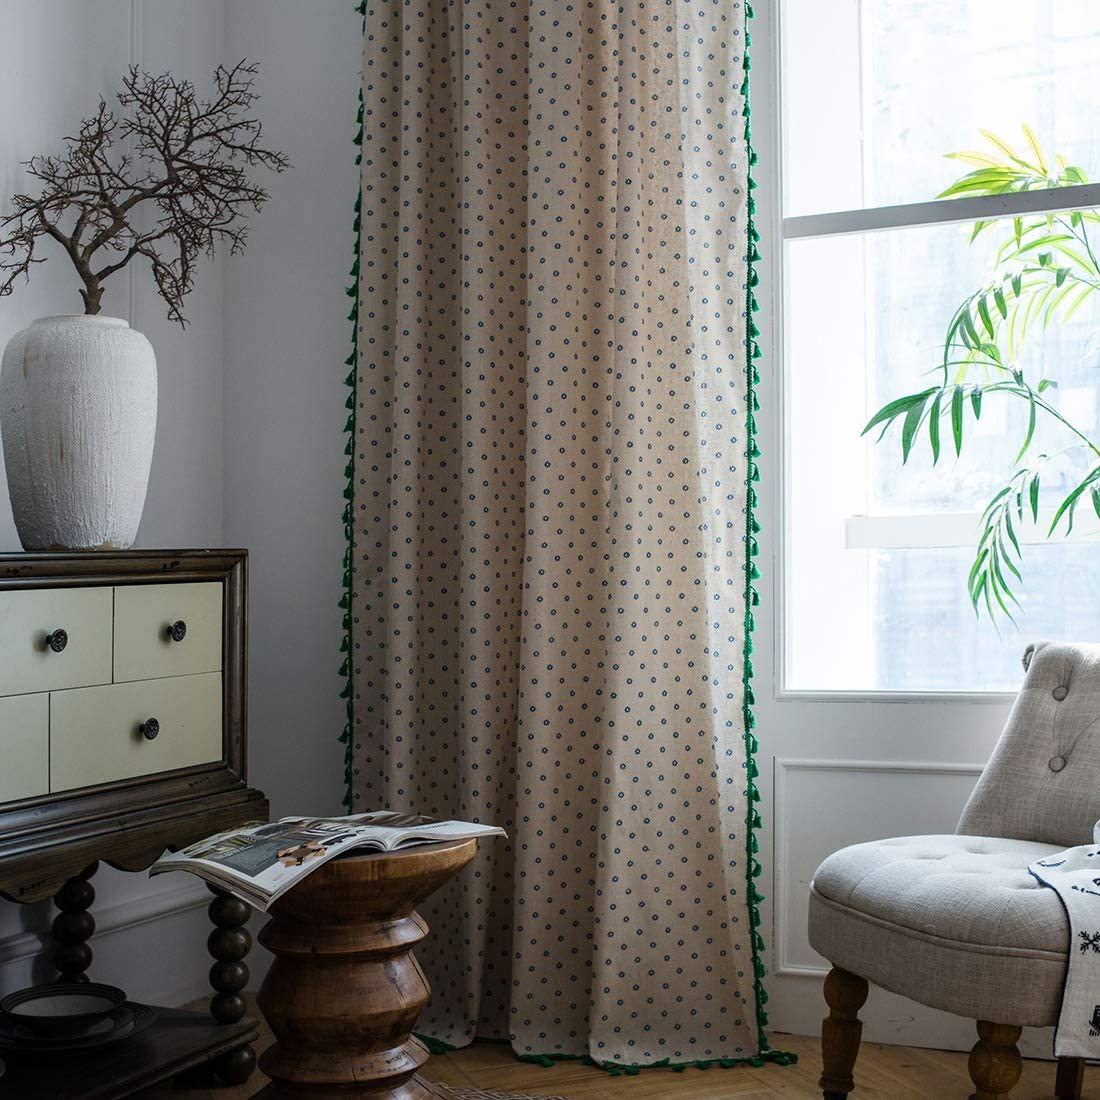 vctops Farmhouse Style Floral Print Cotton Linen Window Curtain Panel with Green Tassels 1 Piece, 59 x 102 Green